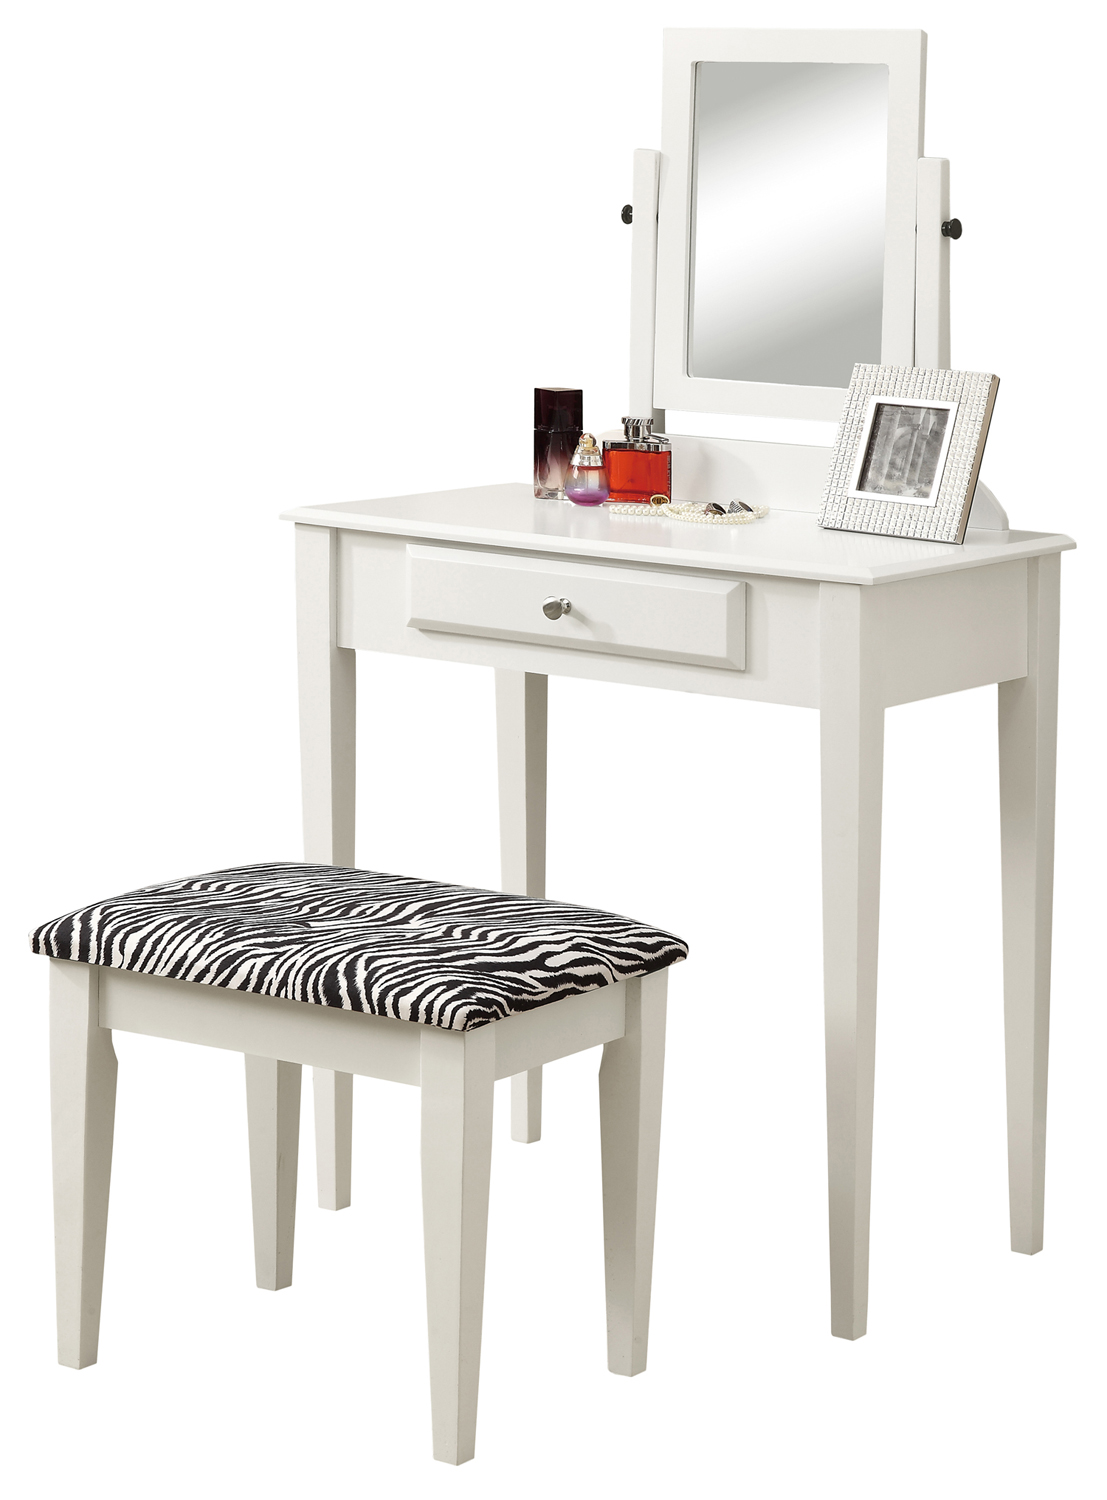 Vanity Set - 2 Pieces Set / White With A Zebra Fabric Stool